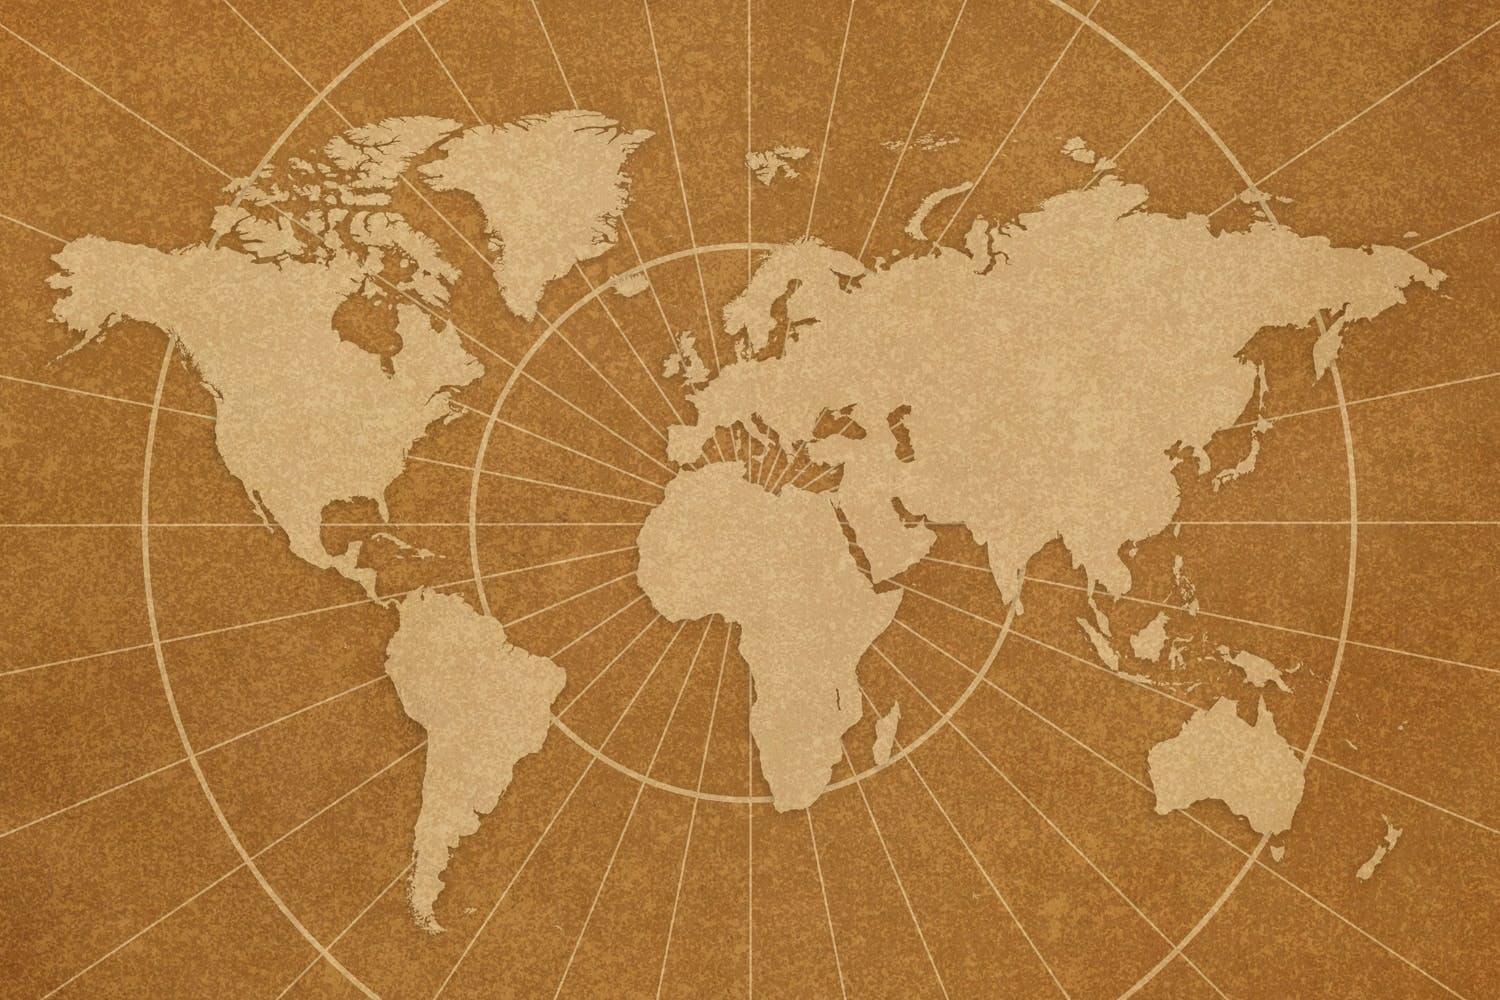 Map of the world, sepia